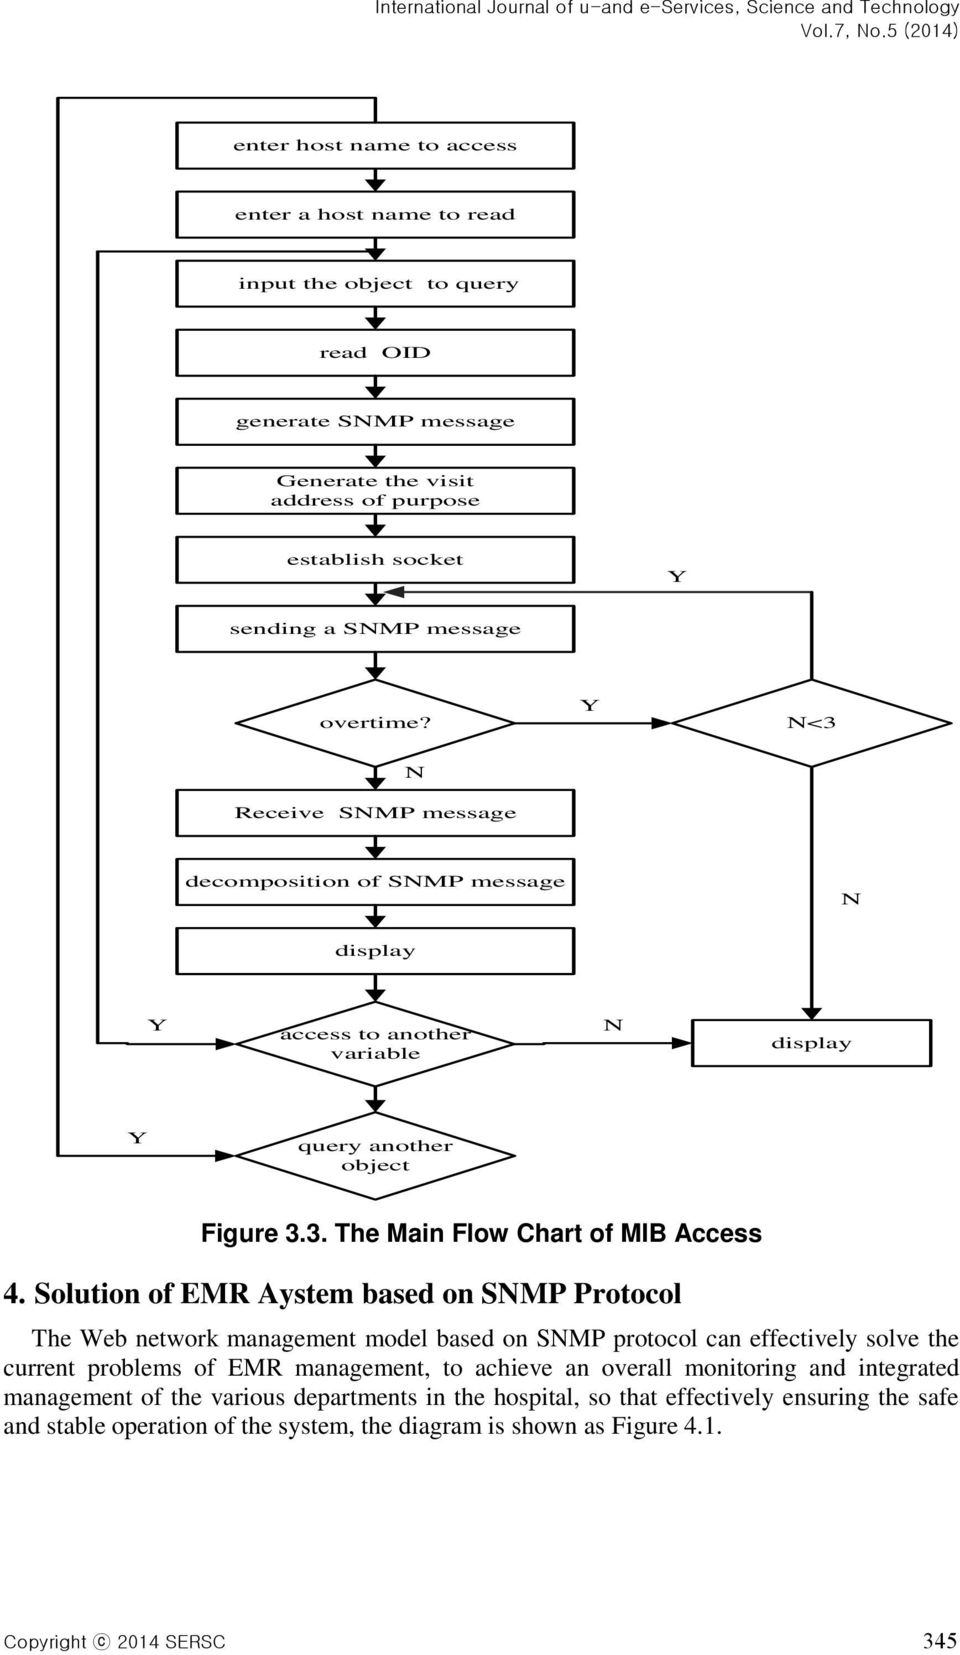 Solution of EMR Aystem based on SNMP Protocol The Web network management model based on SNMP protocol can effectively solve the current problems of EMR management, to achieve an overall